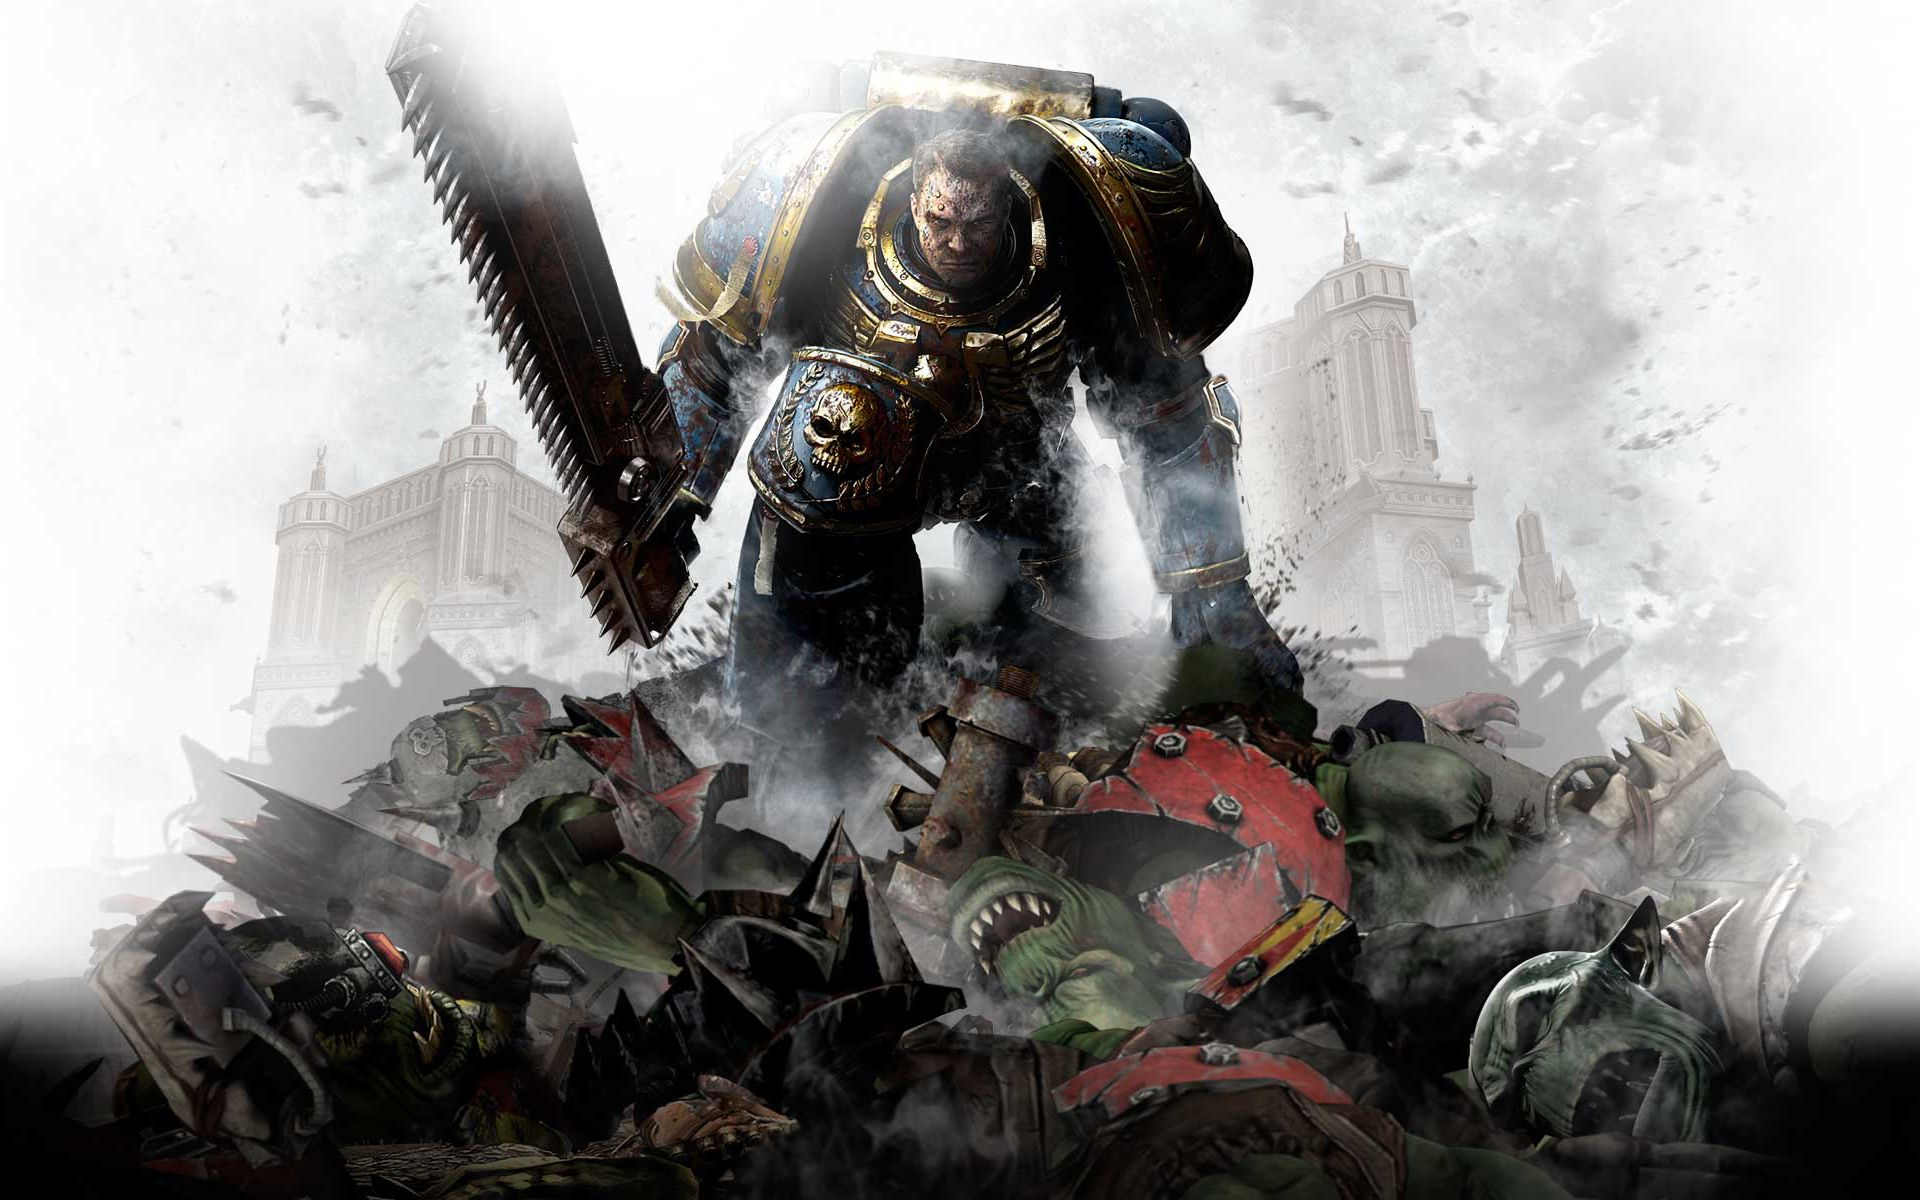 Warhammer 40k Hd Wallpapers And Backgrounds Space Marine Warhammer Warhammer 40000